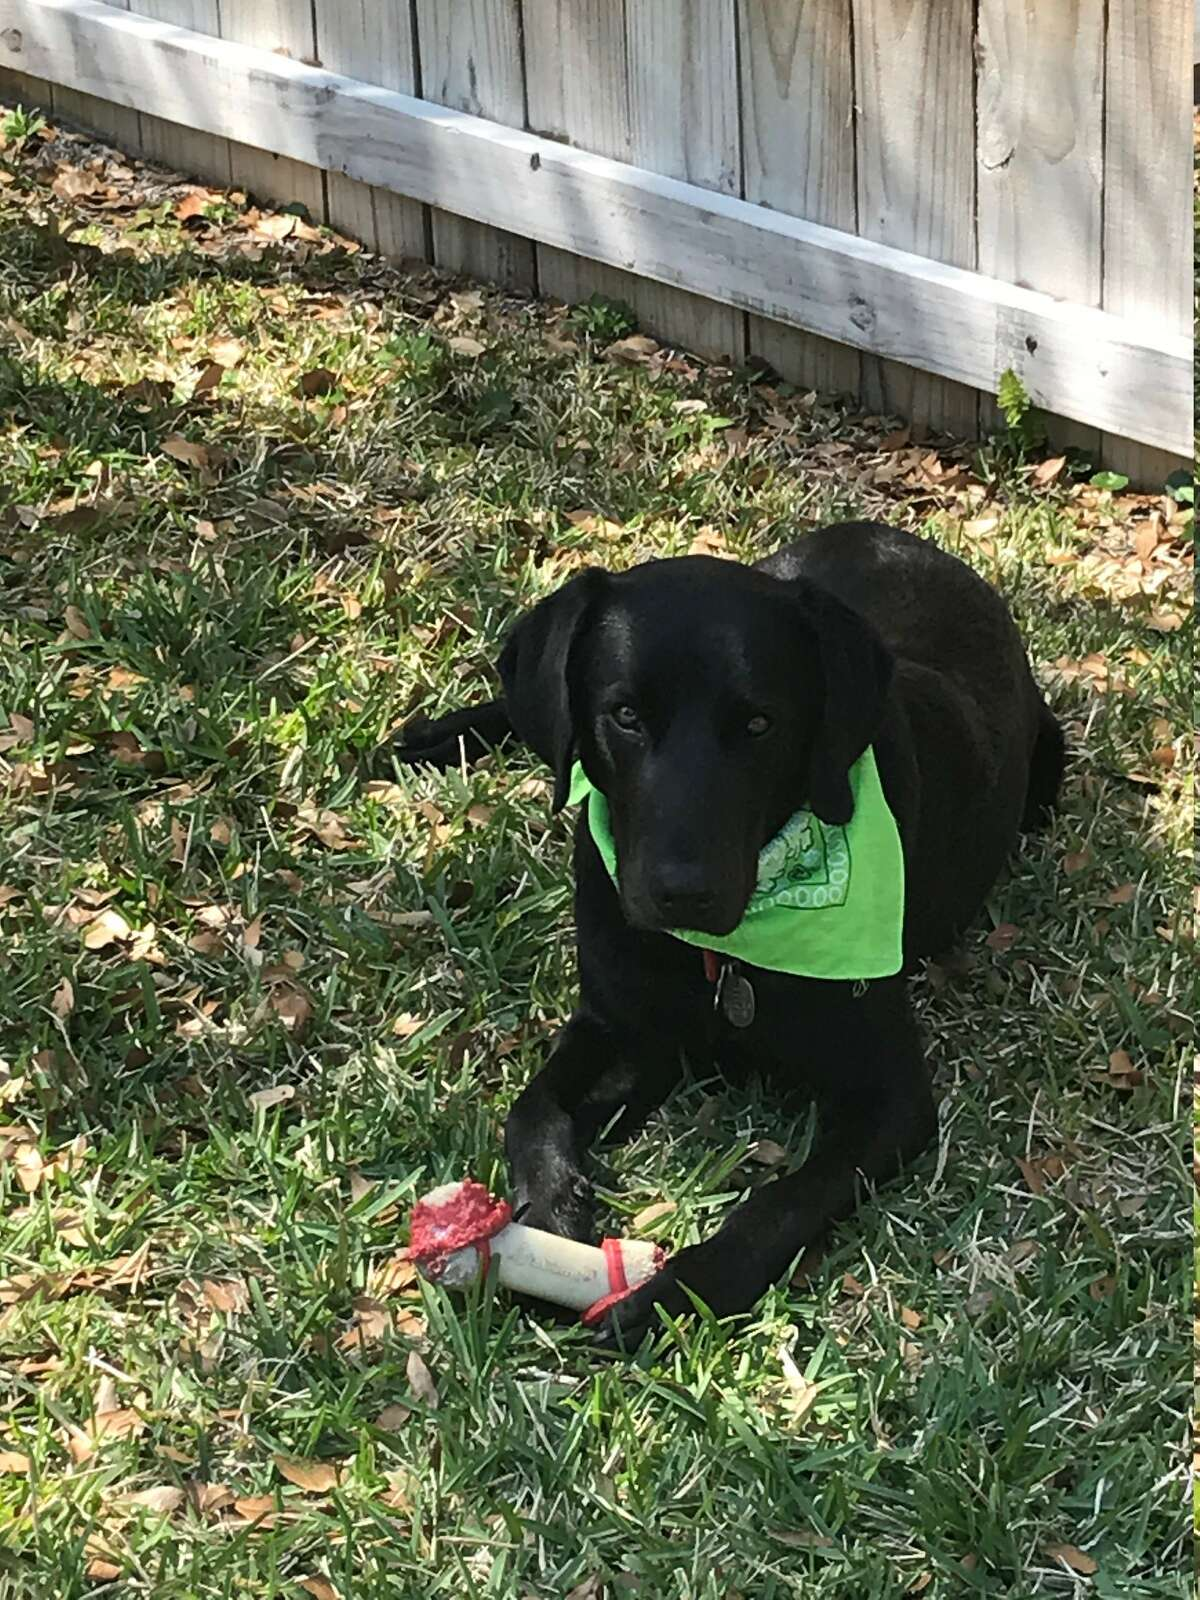 From Linda and Jeff Anderson of Saratoga Springs: This is Fender Jackson Anderson. We adopted him in November 2019 from a shelter in Jackson, Miss. We thought he was two years old but turns out he was an 8-9 month puppy. He has a stump of a tail. Dog DNA shows he is Black Lab and American Foxhound. With the bark of a bloodhound. He is now a very active 2+ old. We spent COVID-19 winter in Florida and he loved laying on the lawn and he always has a toy with him. He spends a lot of time on his back looking for belly rubs.